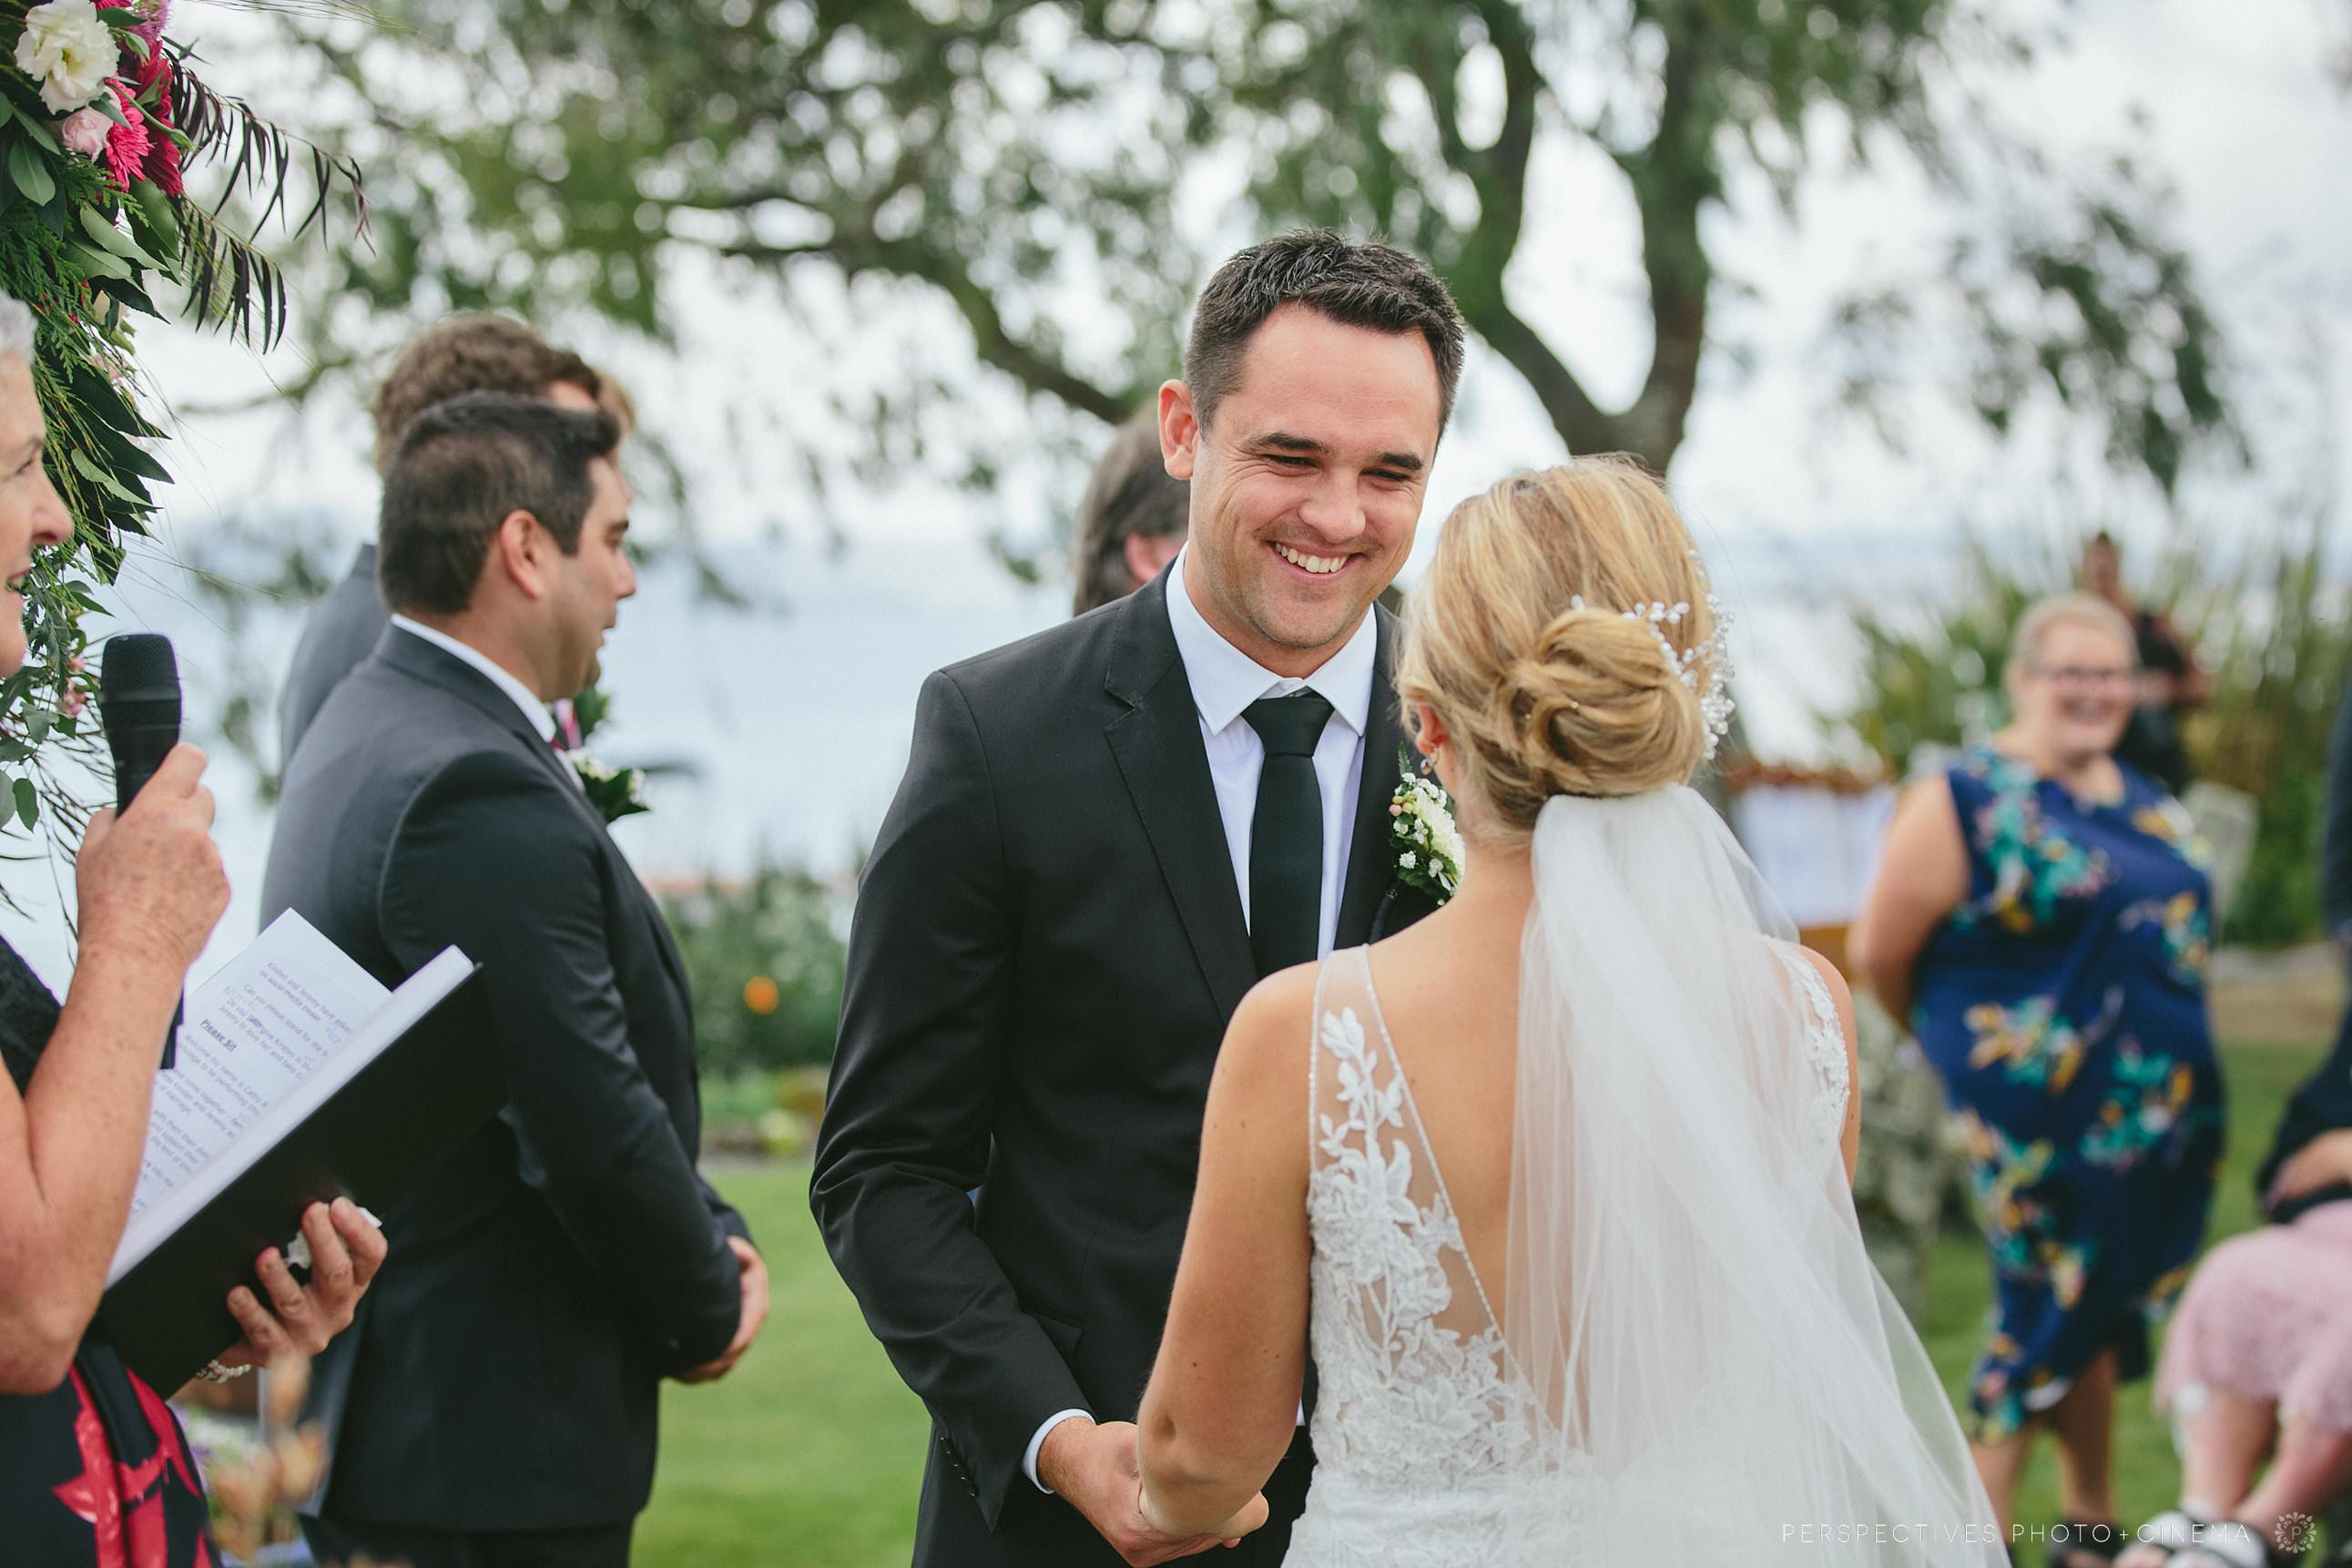 Taupo wedding photos - groom during ceremony